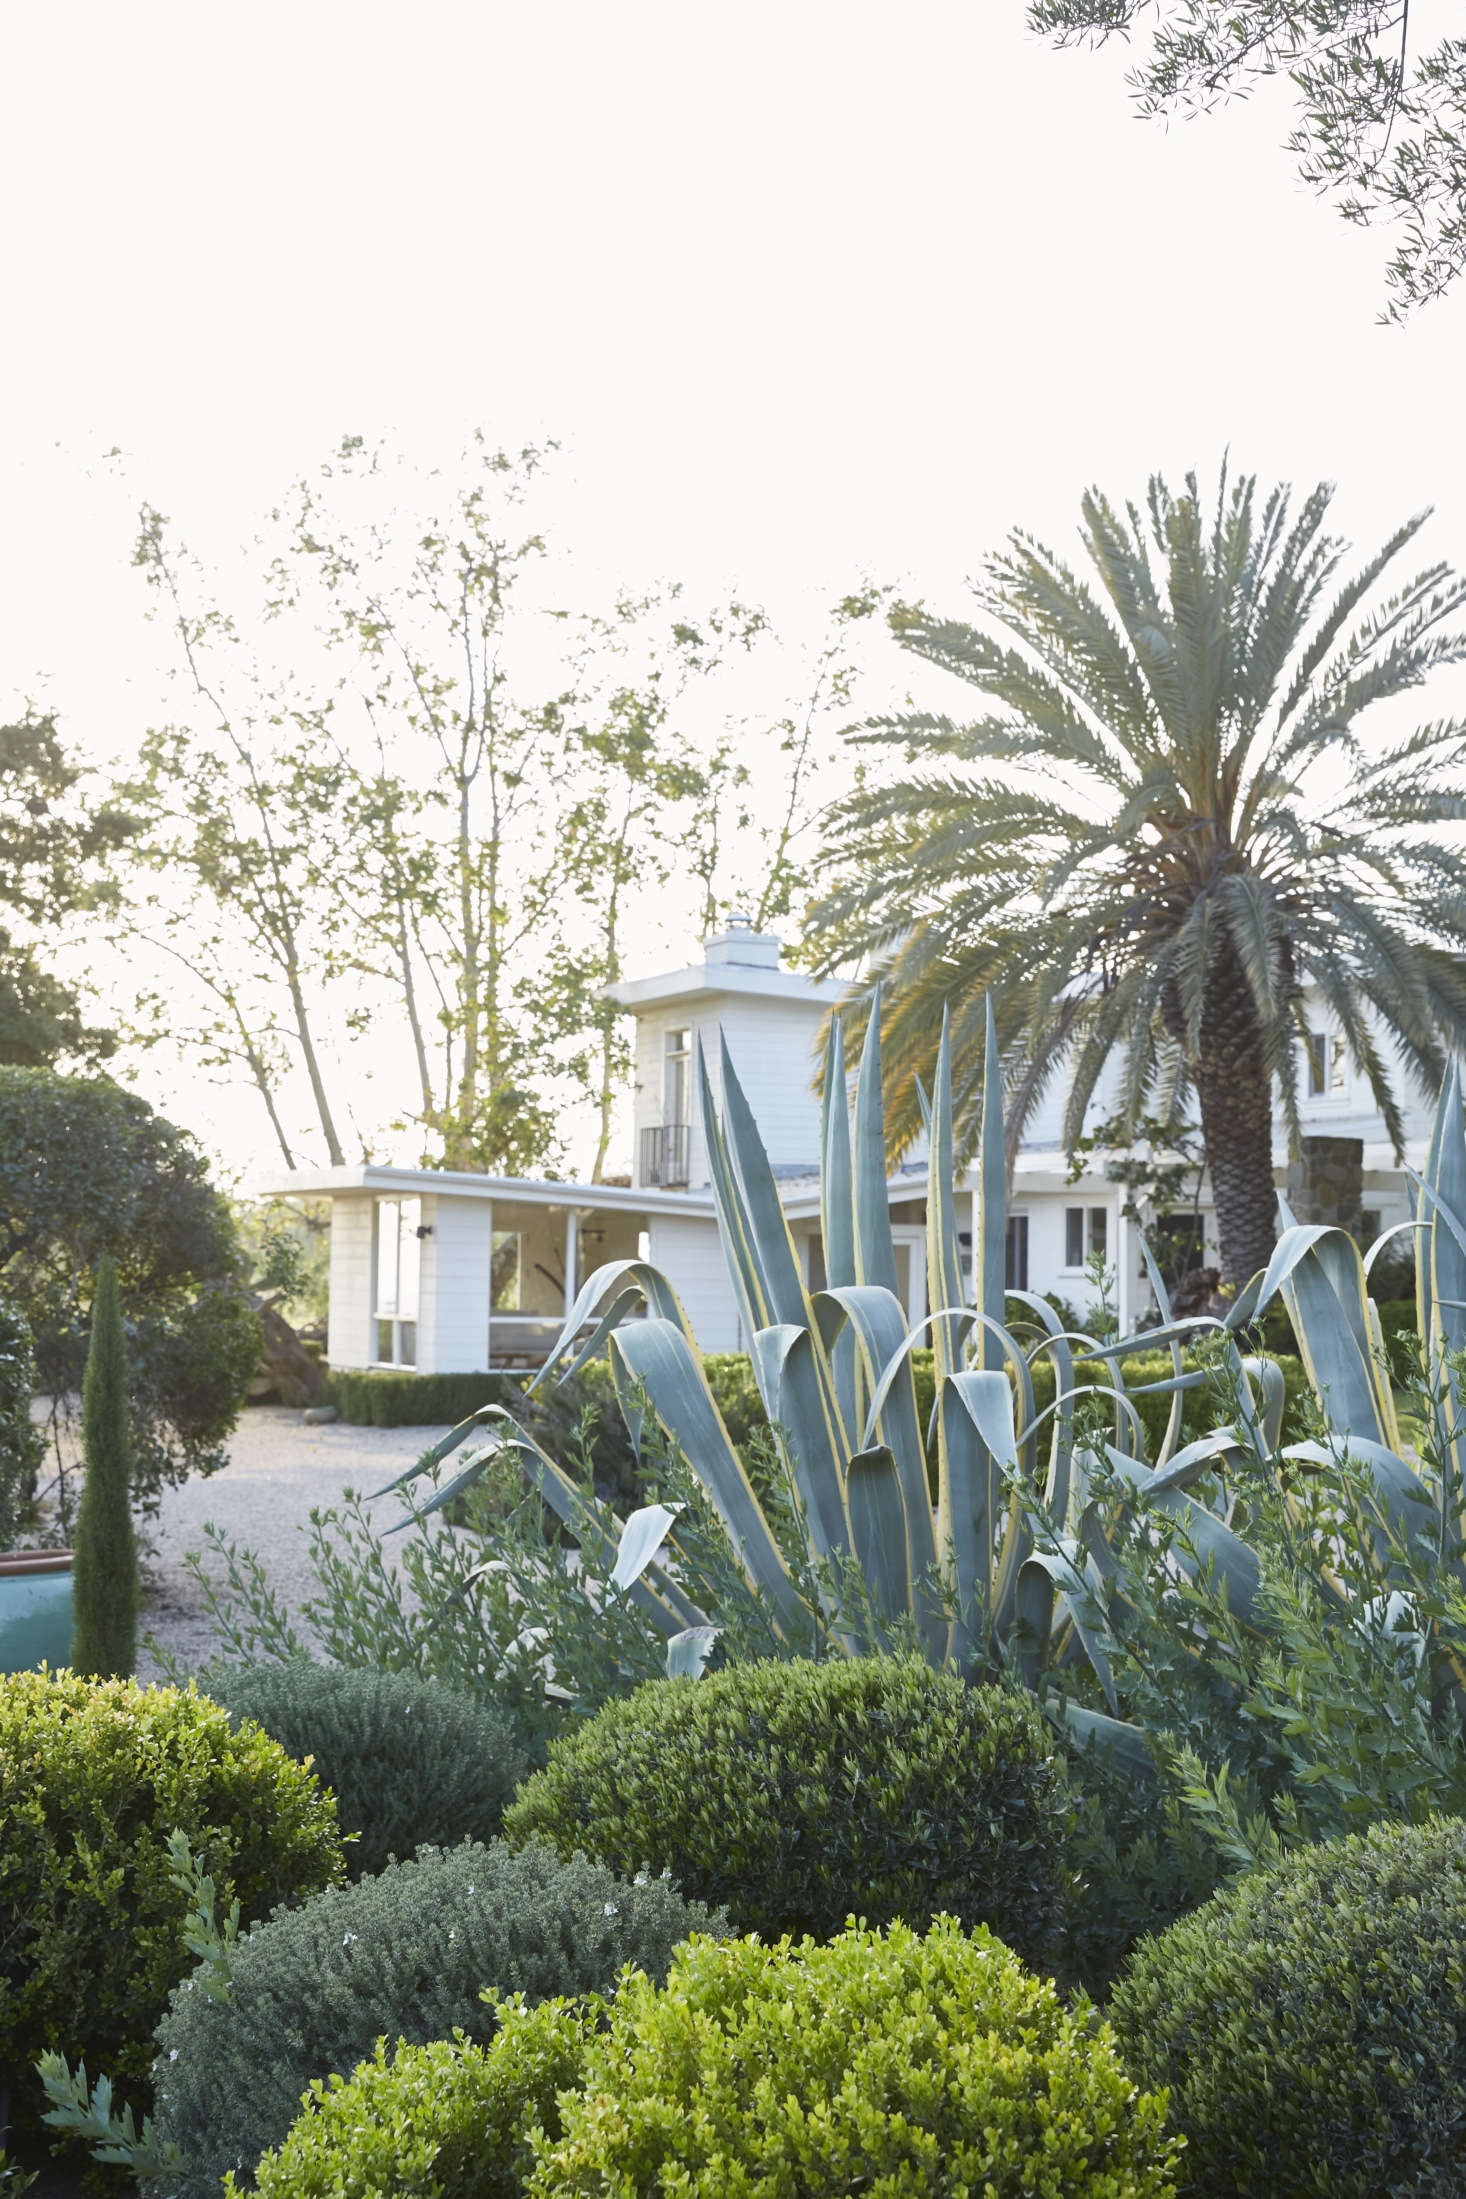 The layered textures and shades of green provide privacy (here, for the main house) and evoke both California (palm trees) and the south of France (topiary).